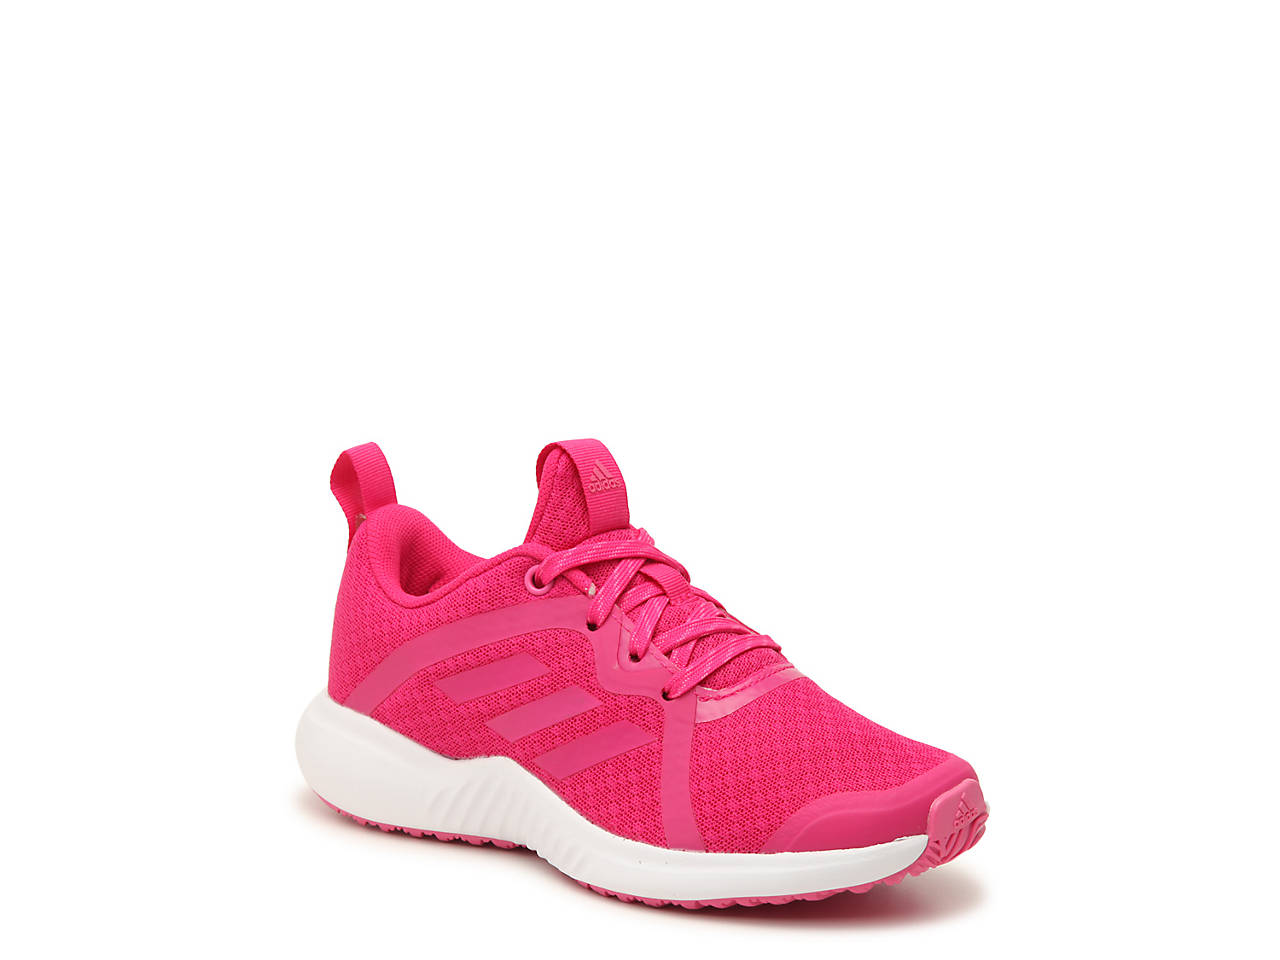 reputable site 0ced6 55648 adidas. Fortarun X Toddler  Youth Sneaker